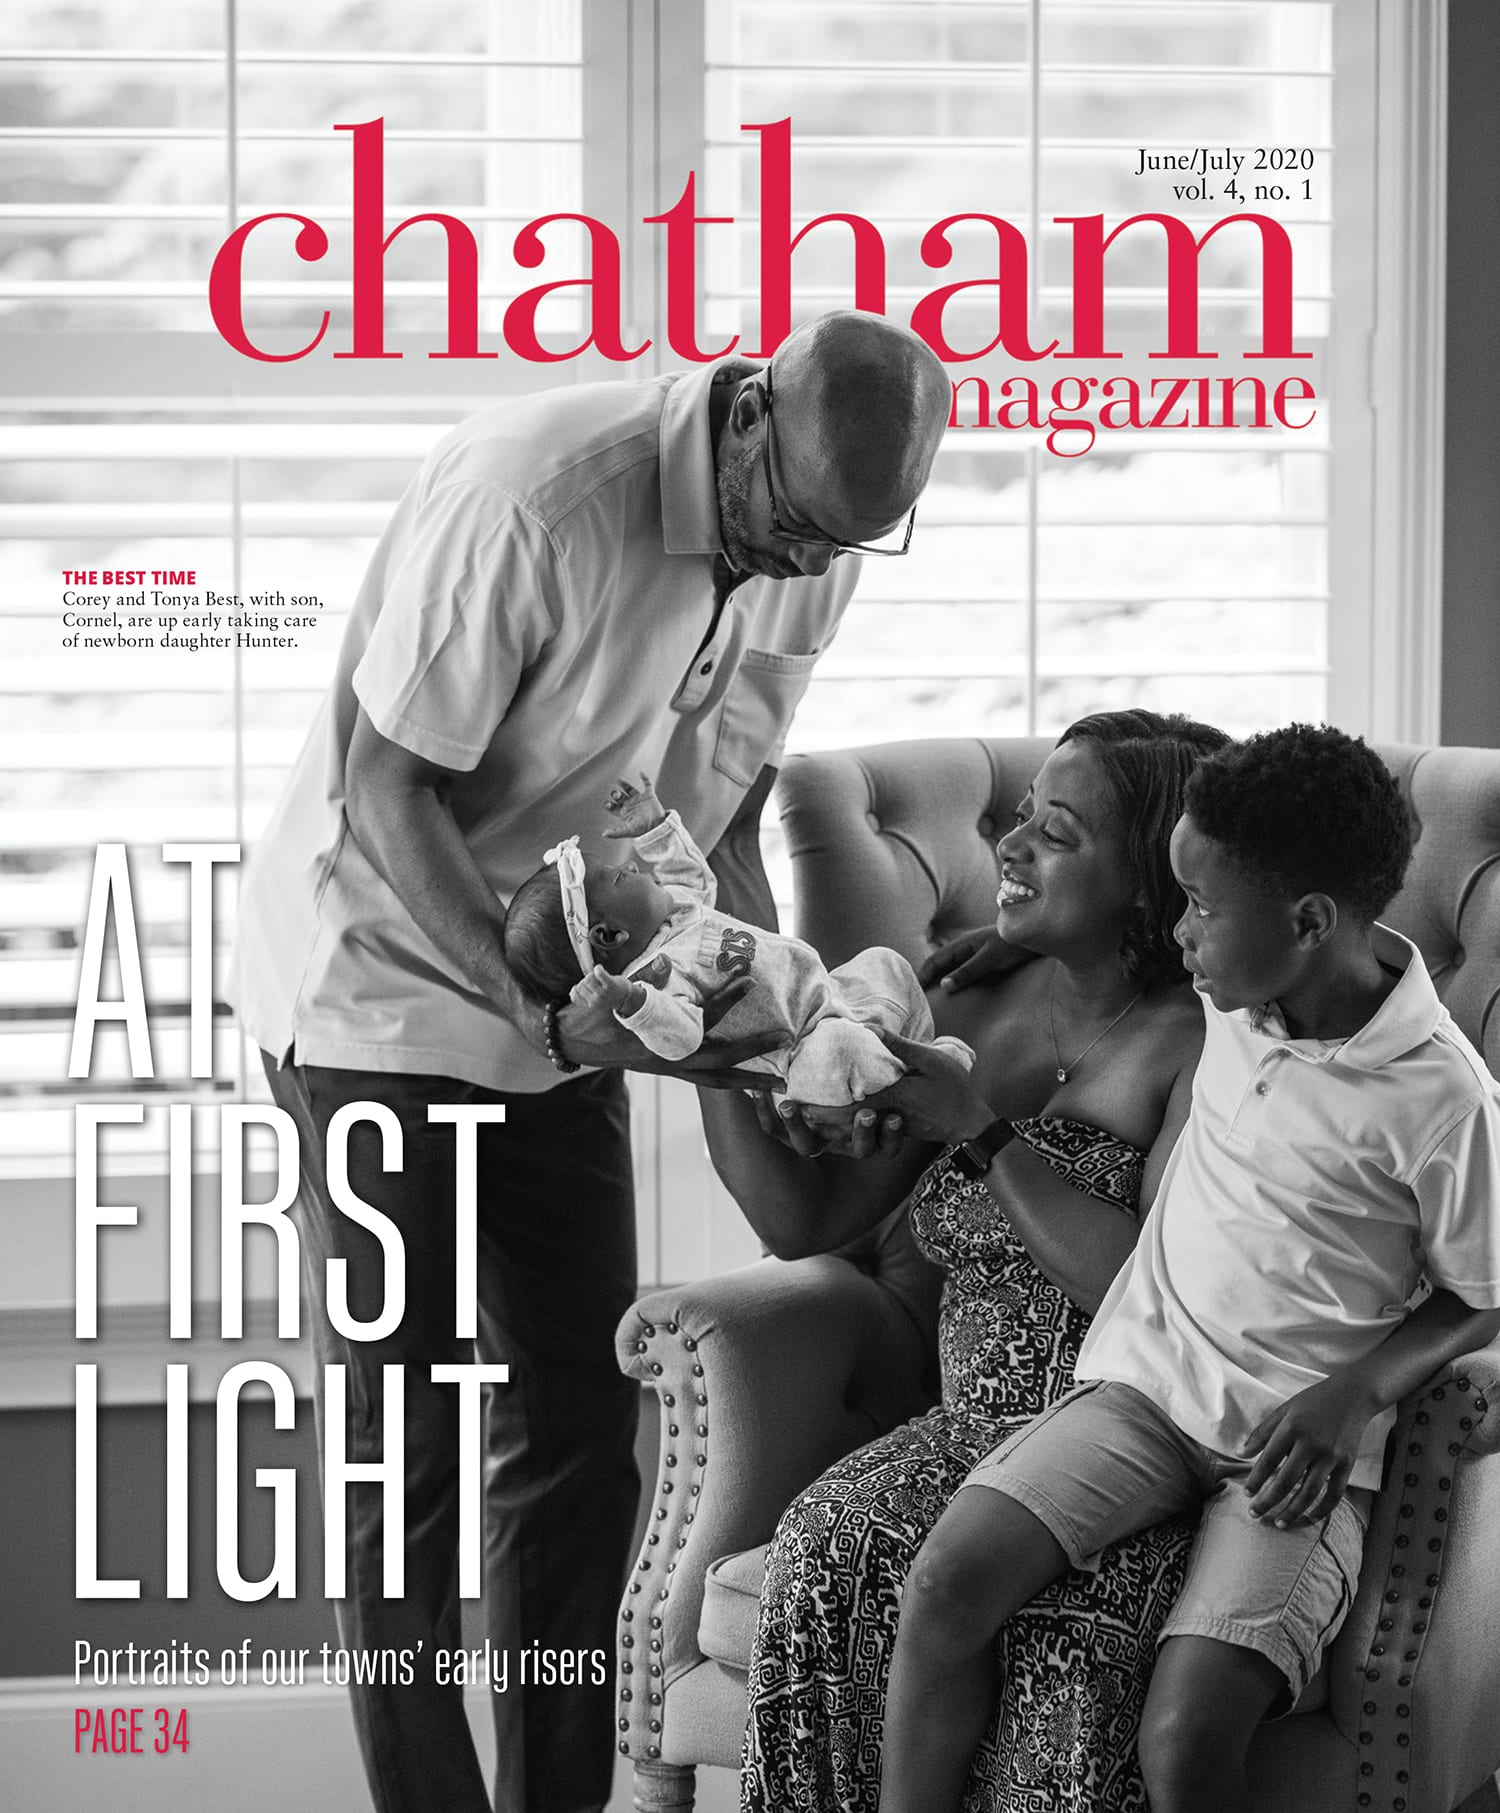 Chatham Magazine June/July 2020 issue